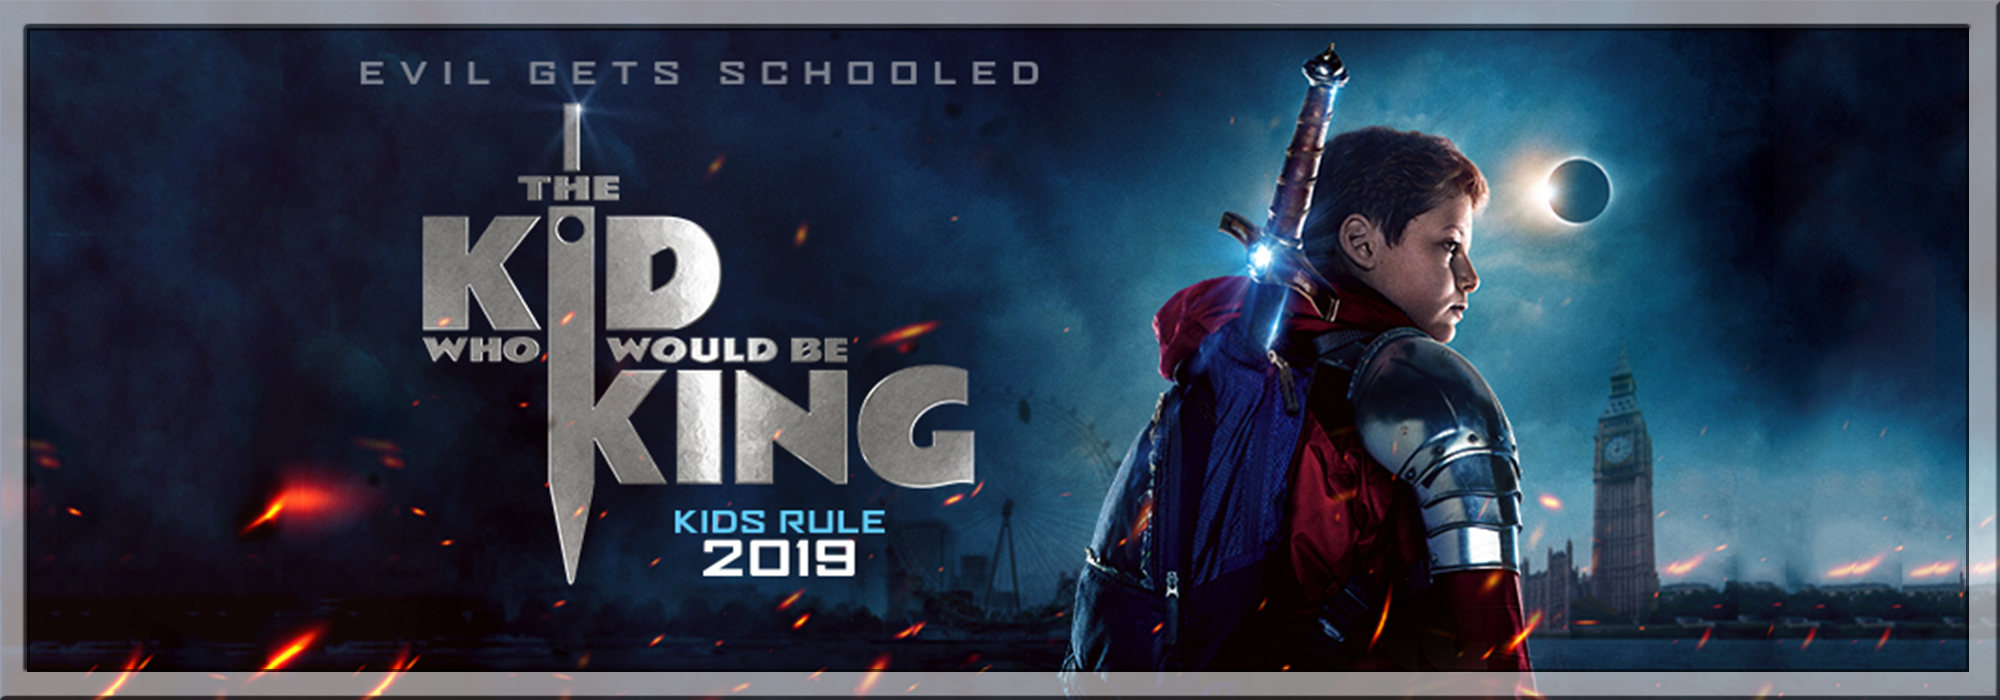 kid-who-would-be-a-king